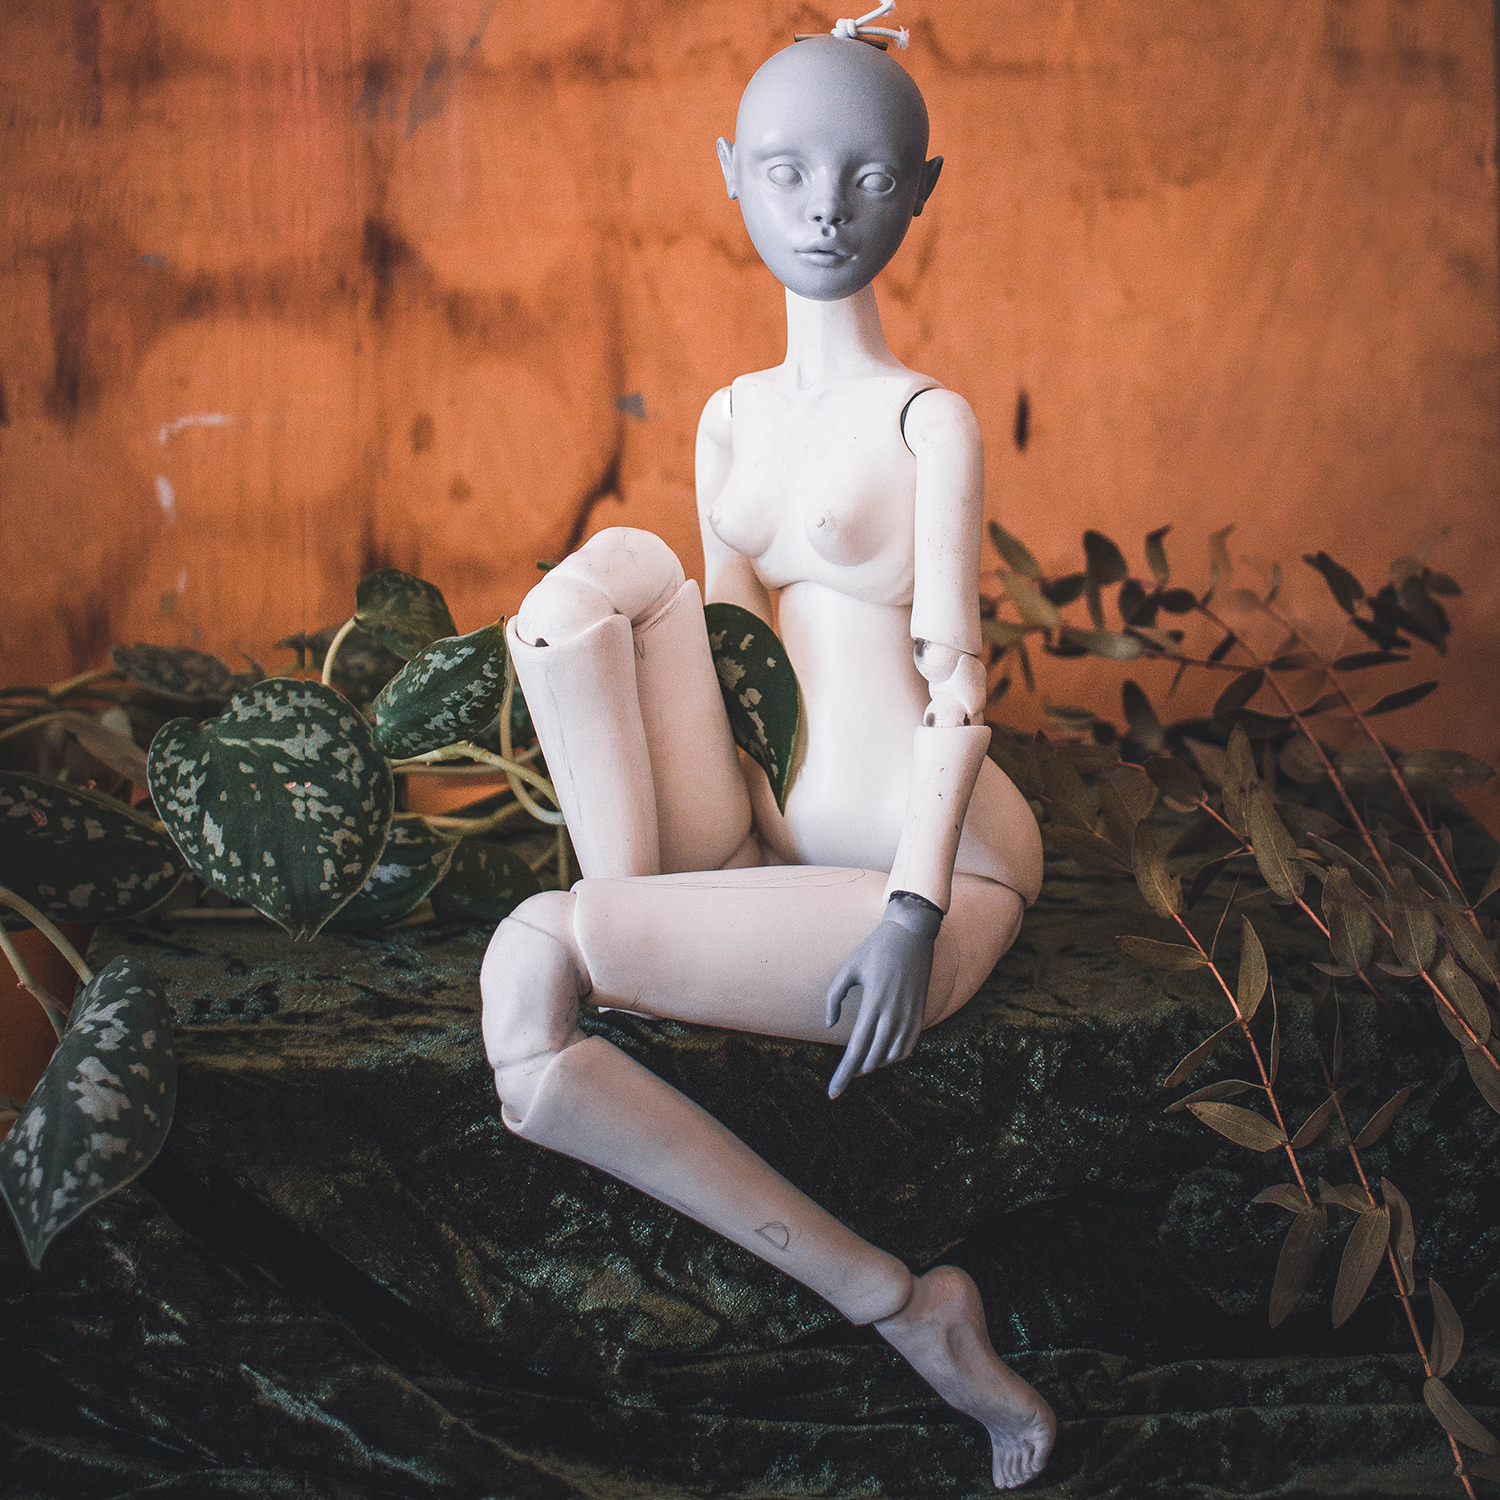 Create a fully poseable doll - Following this class, you'll be able to sculpt a fully poseable BJD. I've documented every step in my sculpting process and depicted all my techniques.